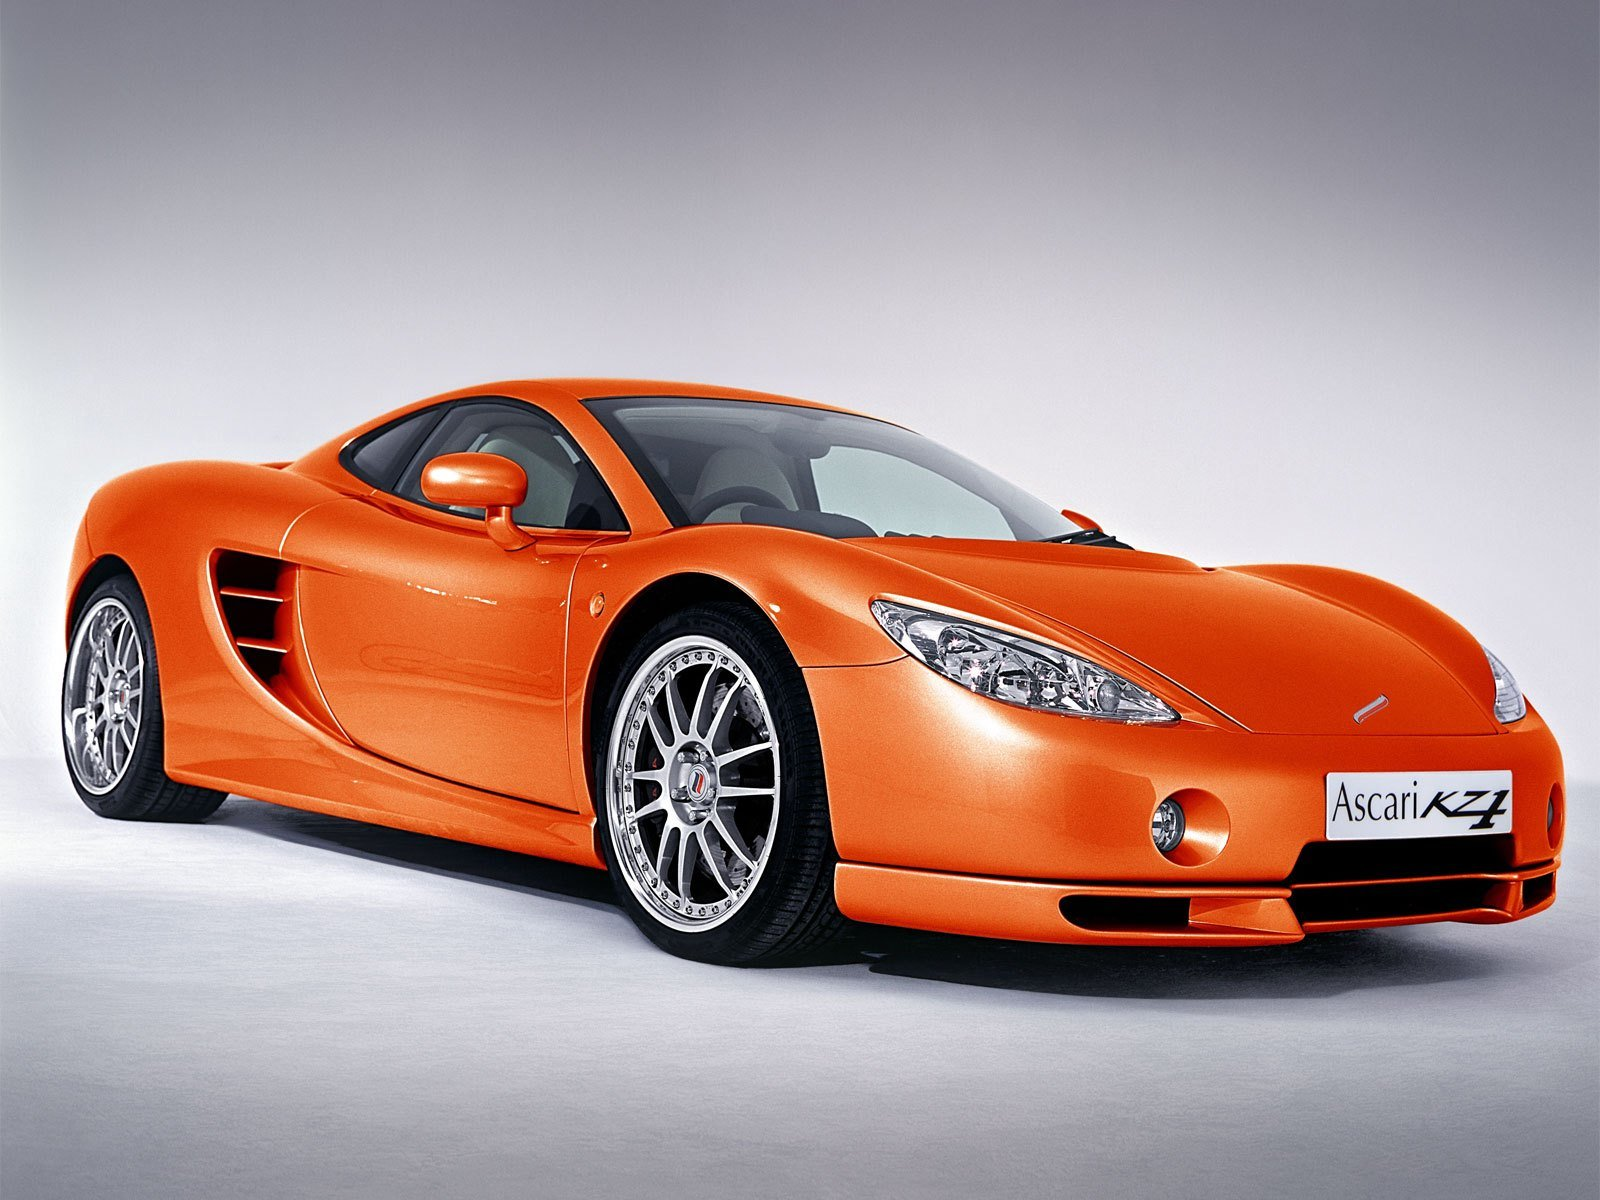 New Ascari Pictures Wallpapers Pics Photos Quality Images On This Month